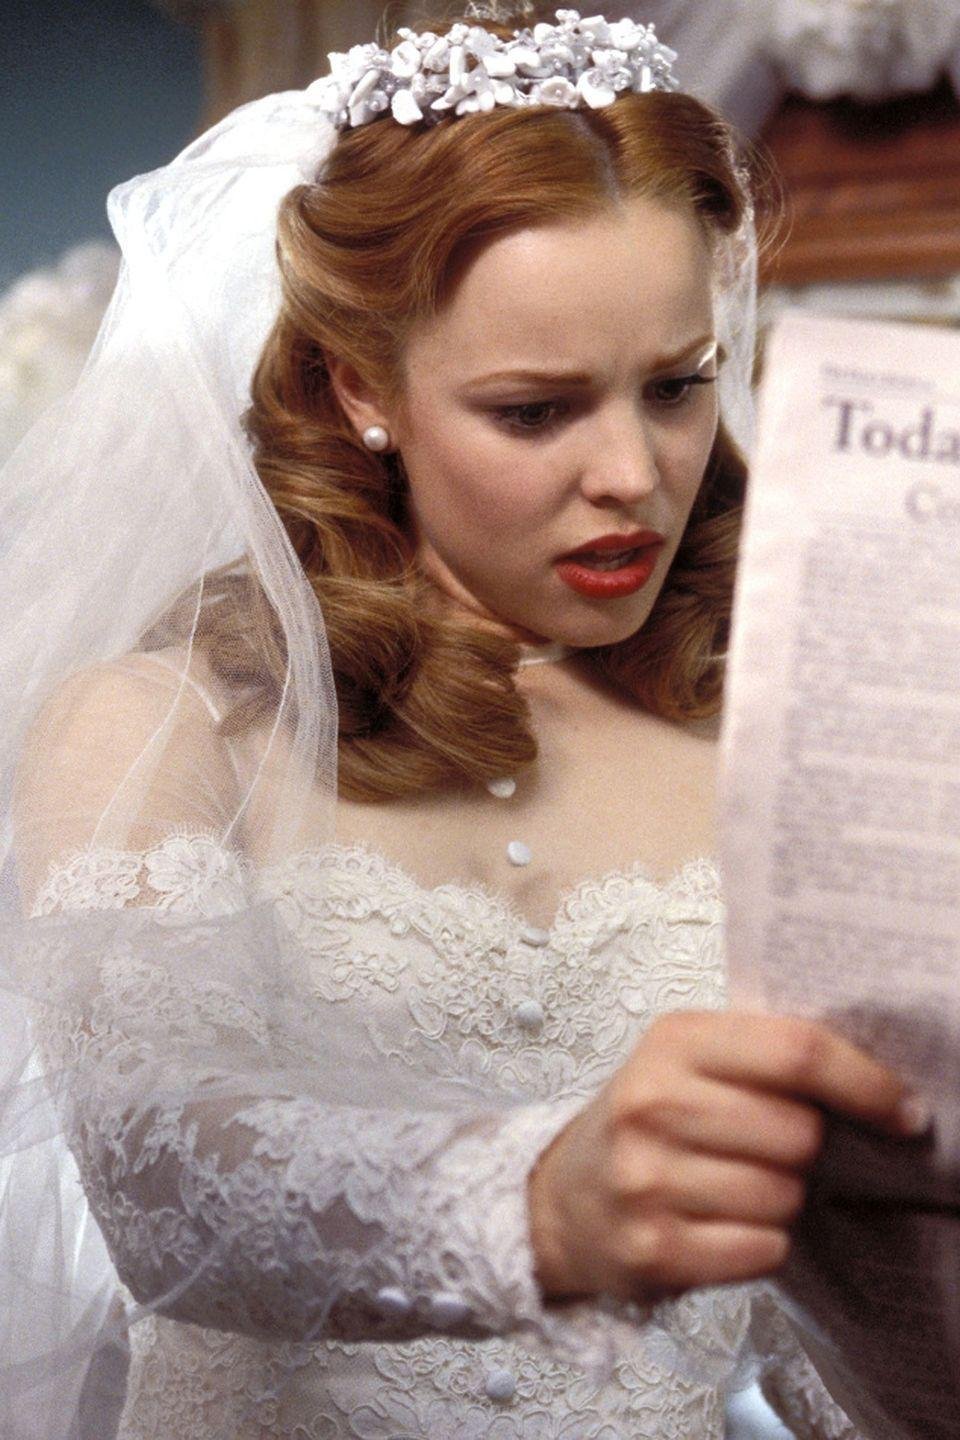 <p>We almost (but not really) wanted to see Rachel McAdams's character, Allie Hamilton, marry Lon so that we could get a better glimpse at the exquisite gown she was planning to wear for the ceremony. The 1940s wedding dress featured front buttons, an illusion neckline, and lots of lace.<br></p>